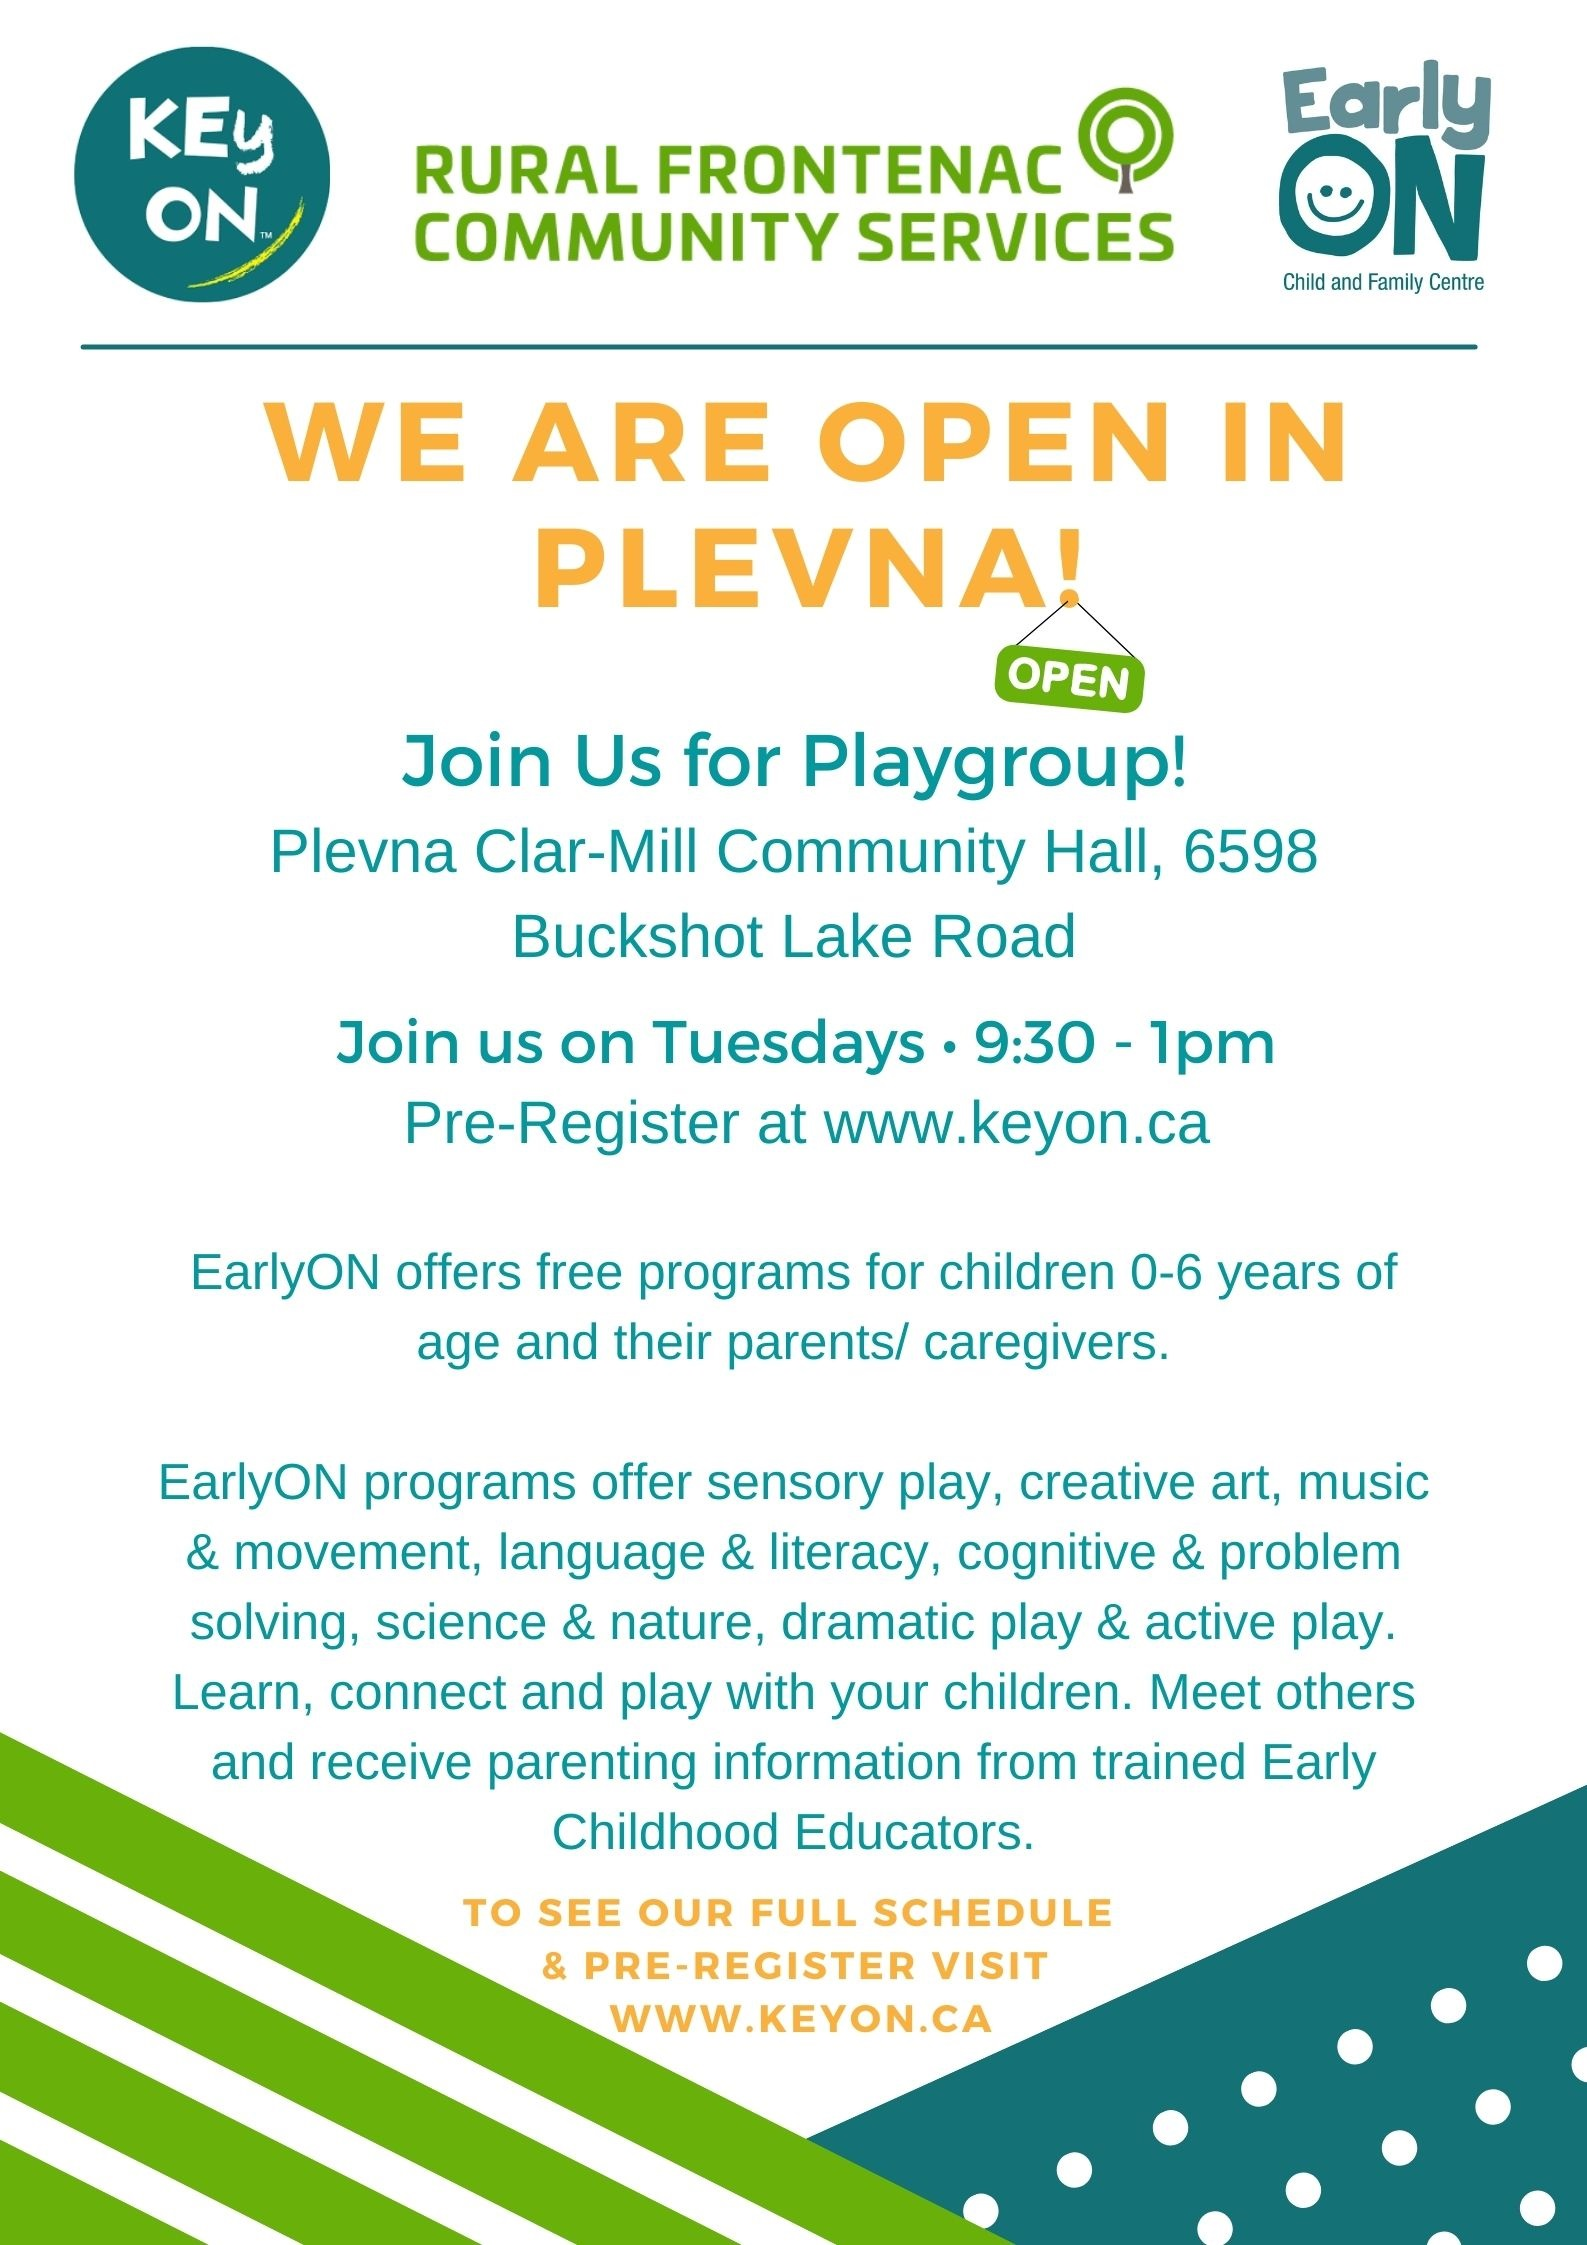 RURAL FRONTENAC COMMUNITY SERVICES WE ARE OPEN IN PLEVNA  Join Us for Playgroup!